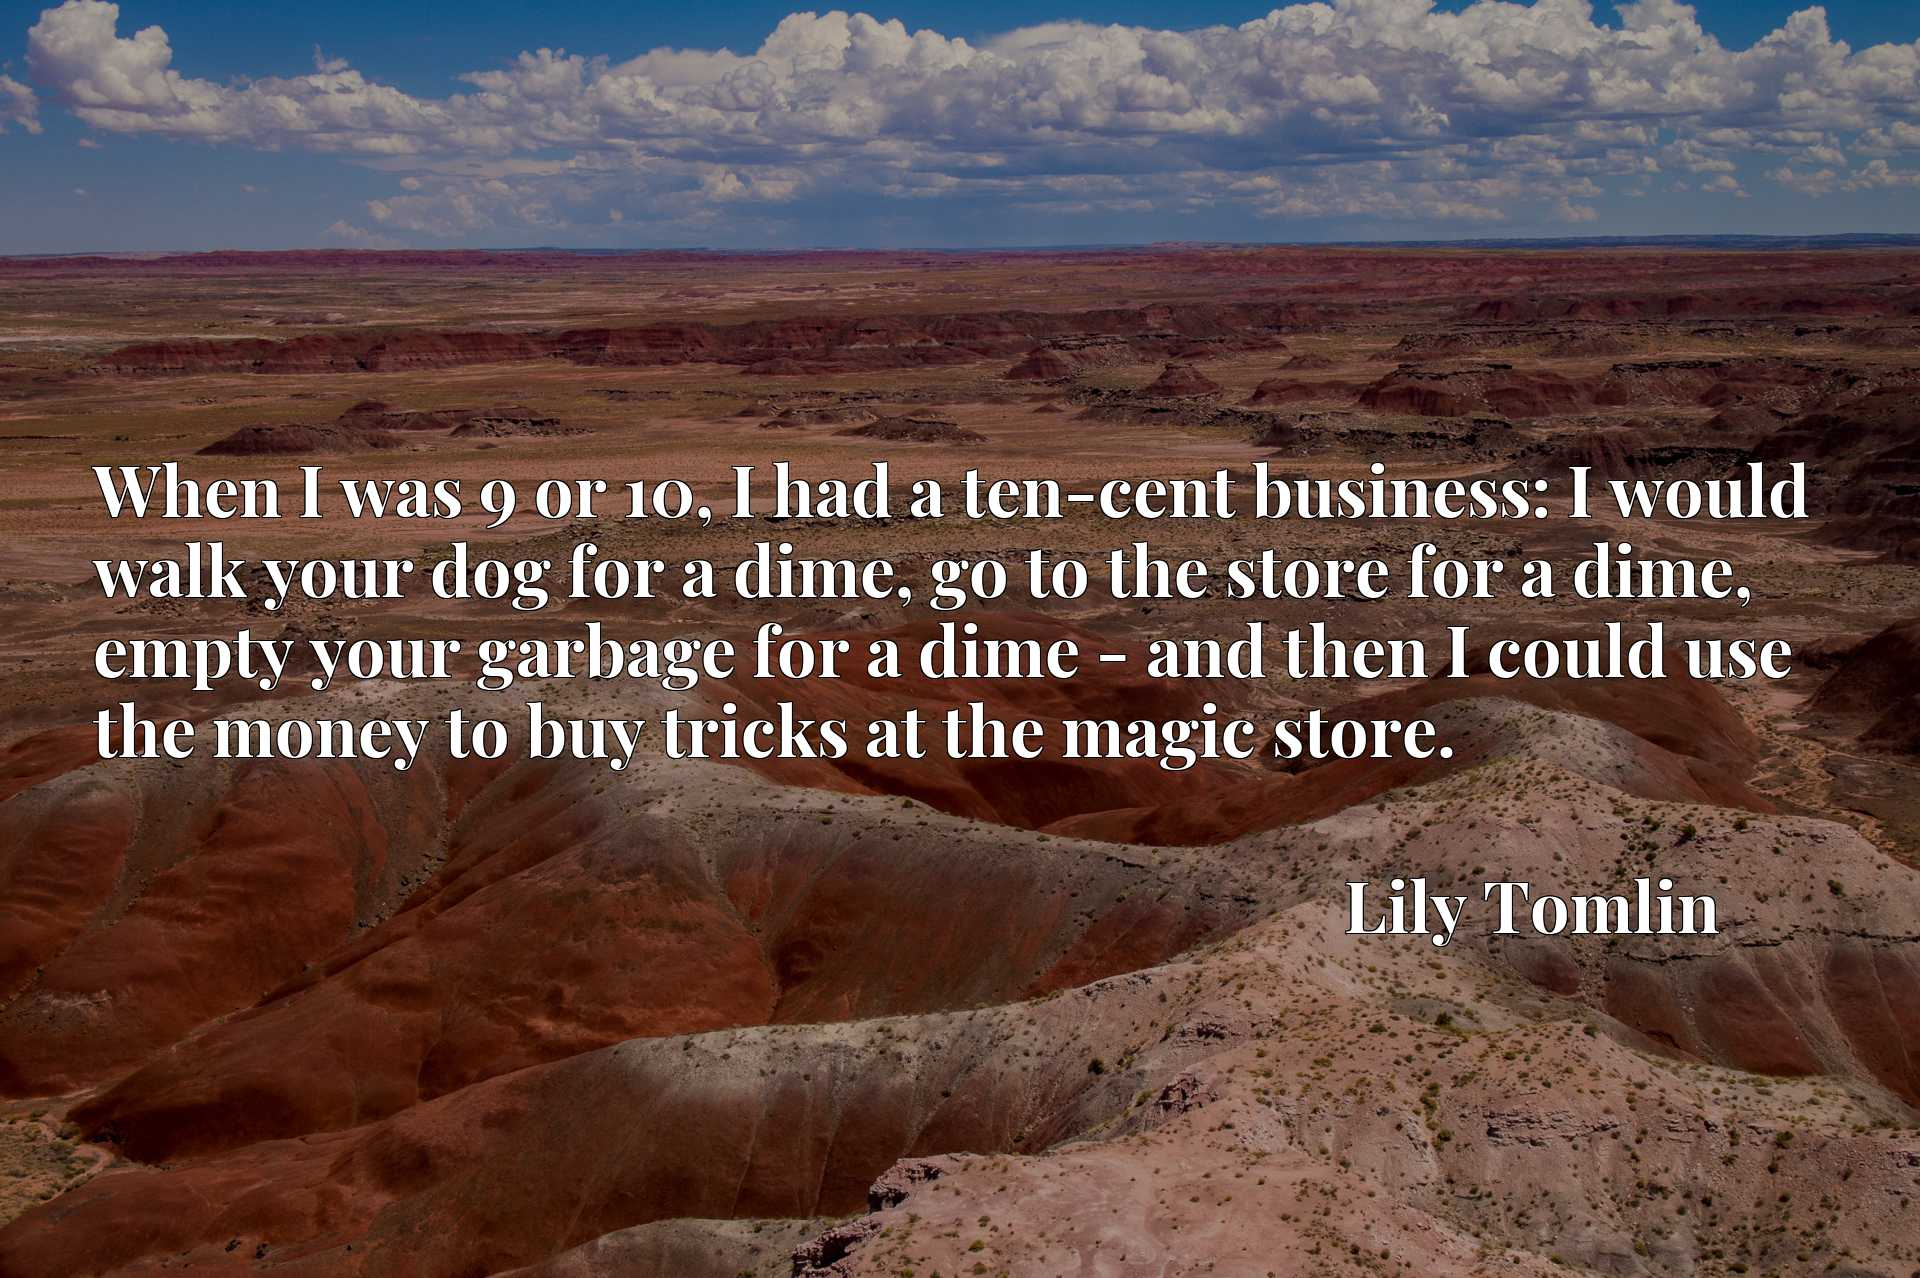 When I was 9 or 10, I had a ten-cent business: I would walk your dog for a dime, go to the store for a dime, empty your garbage for a dime - and then I could use the money to buy tricks at the magic store.